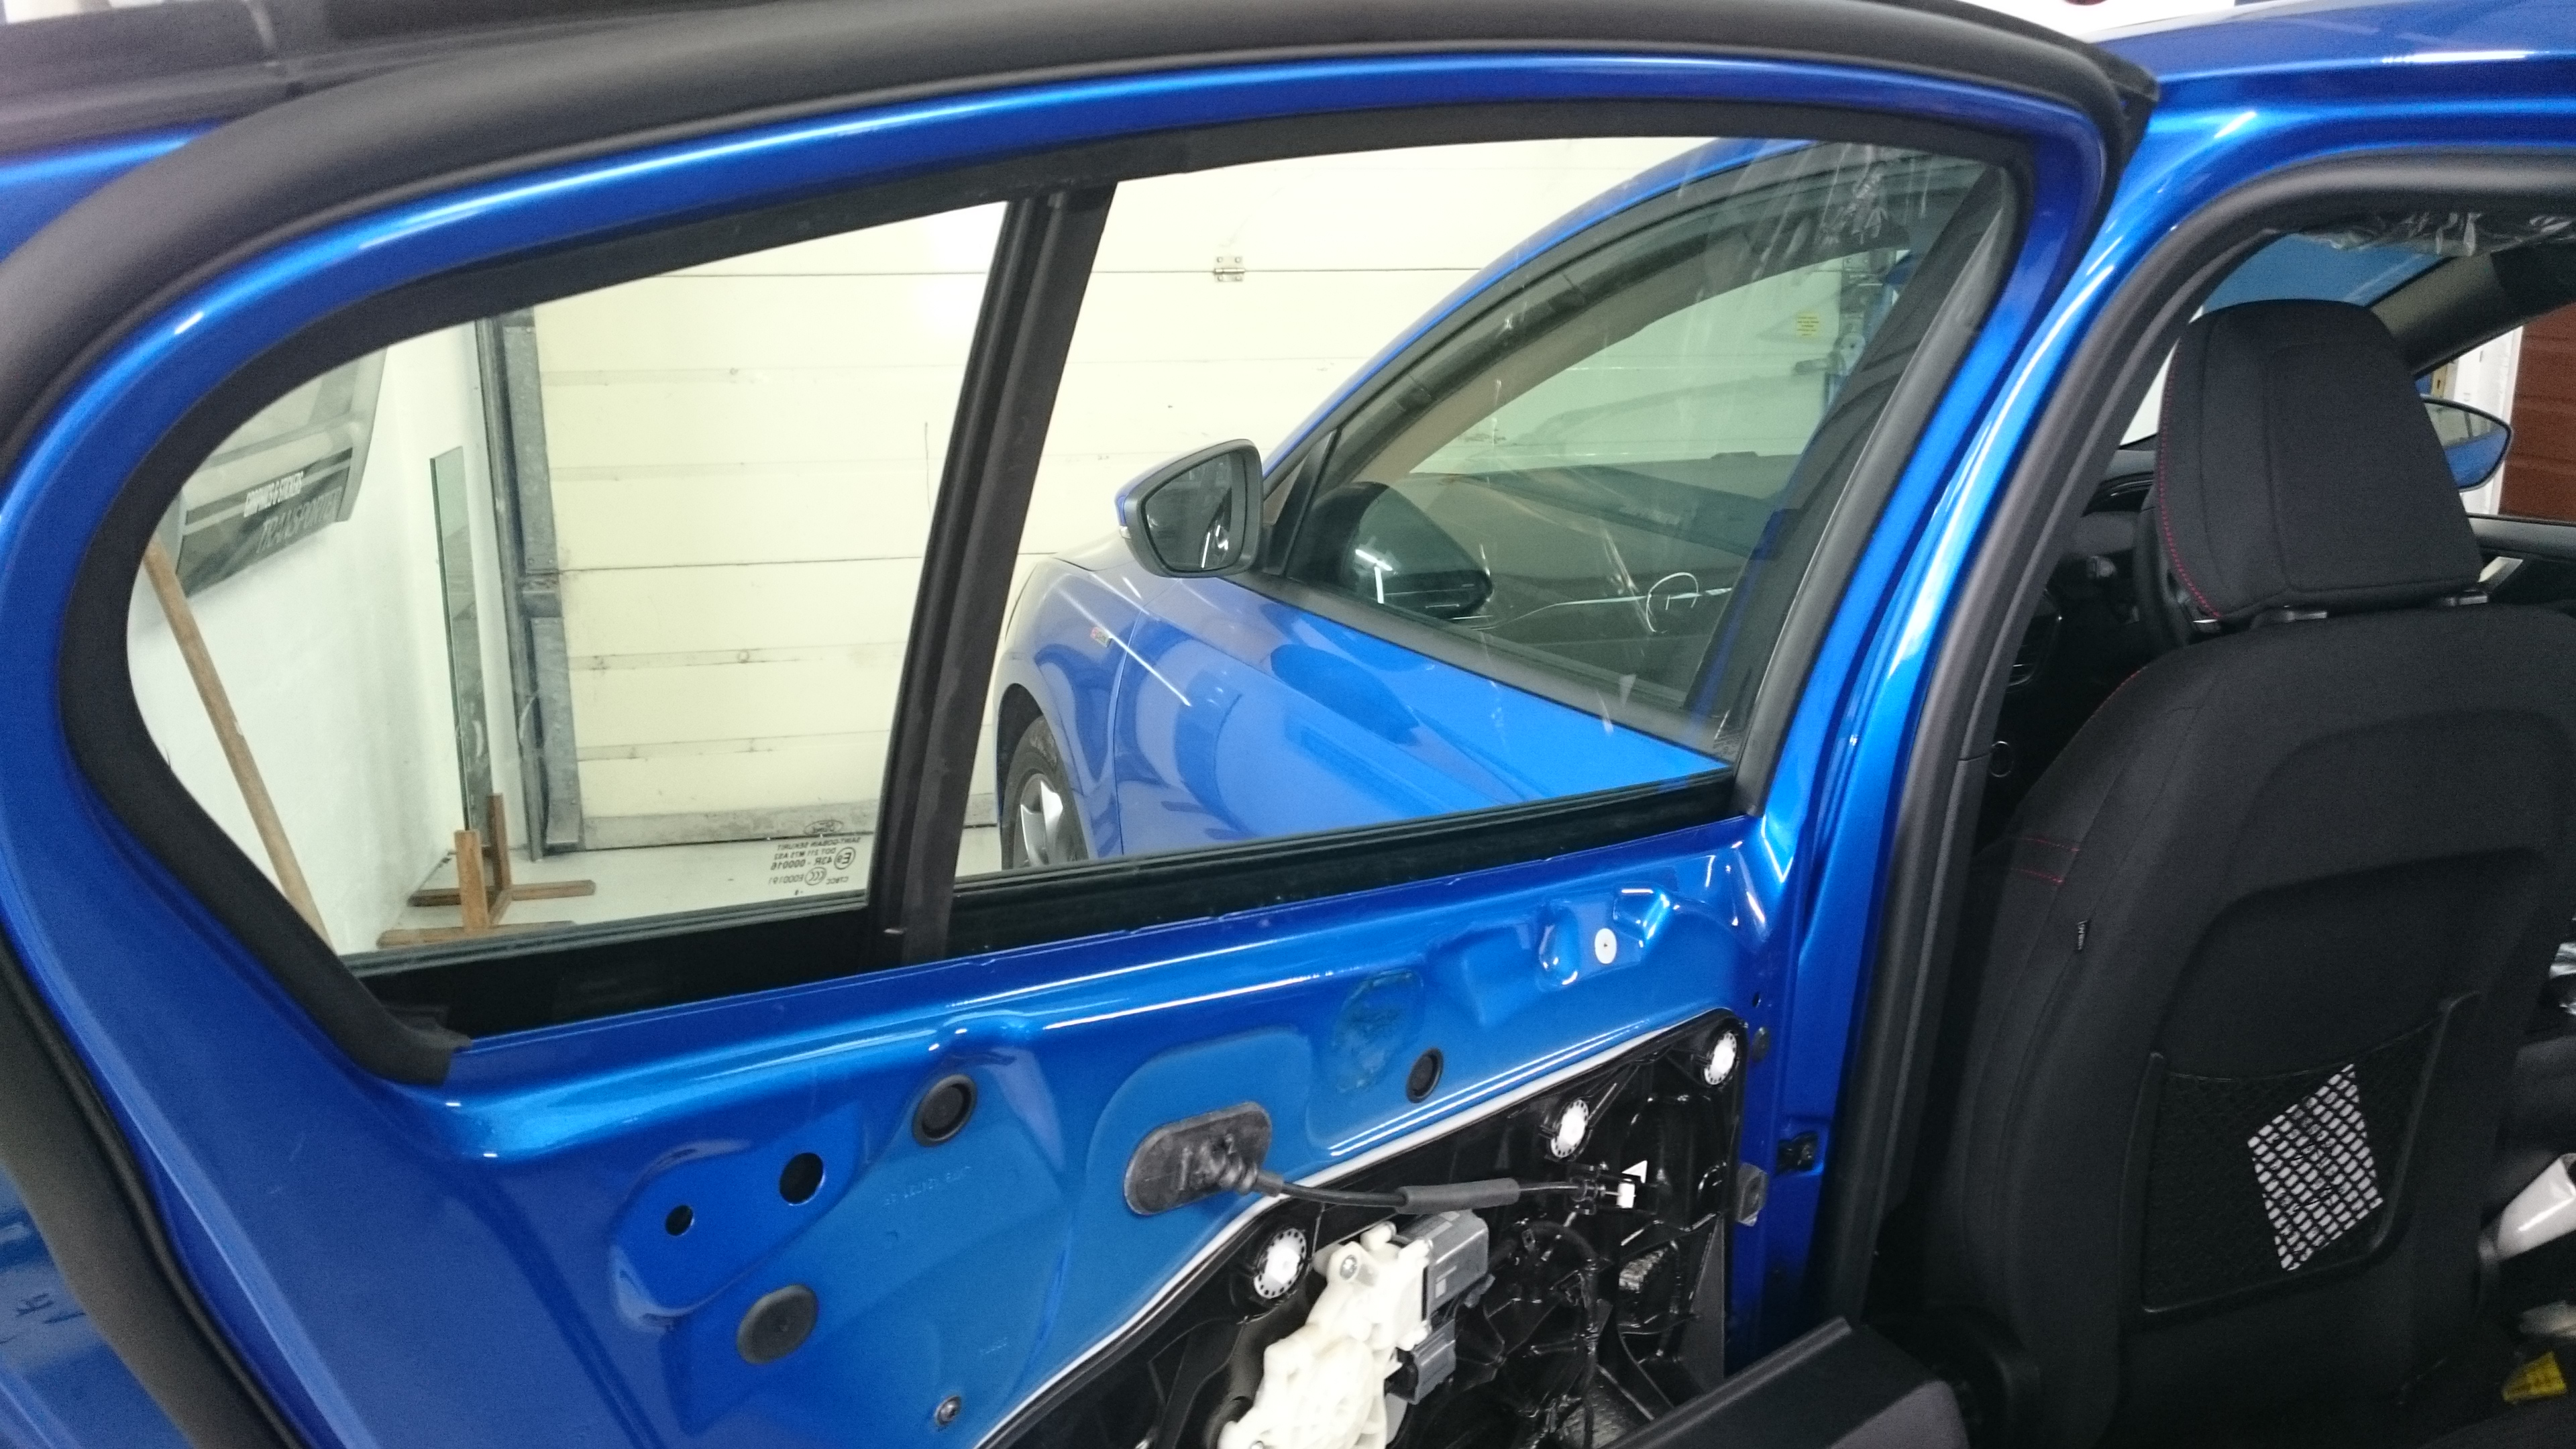 Ford Focus 5 door hatchback door area ready to have window film applied. Tinting Express Barnstaple